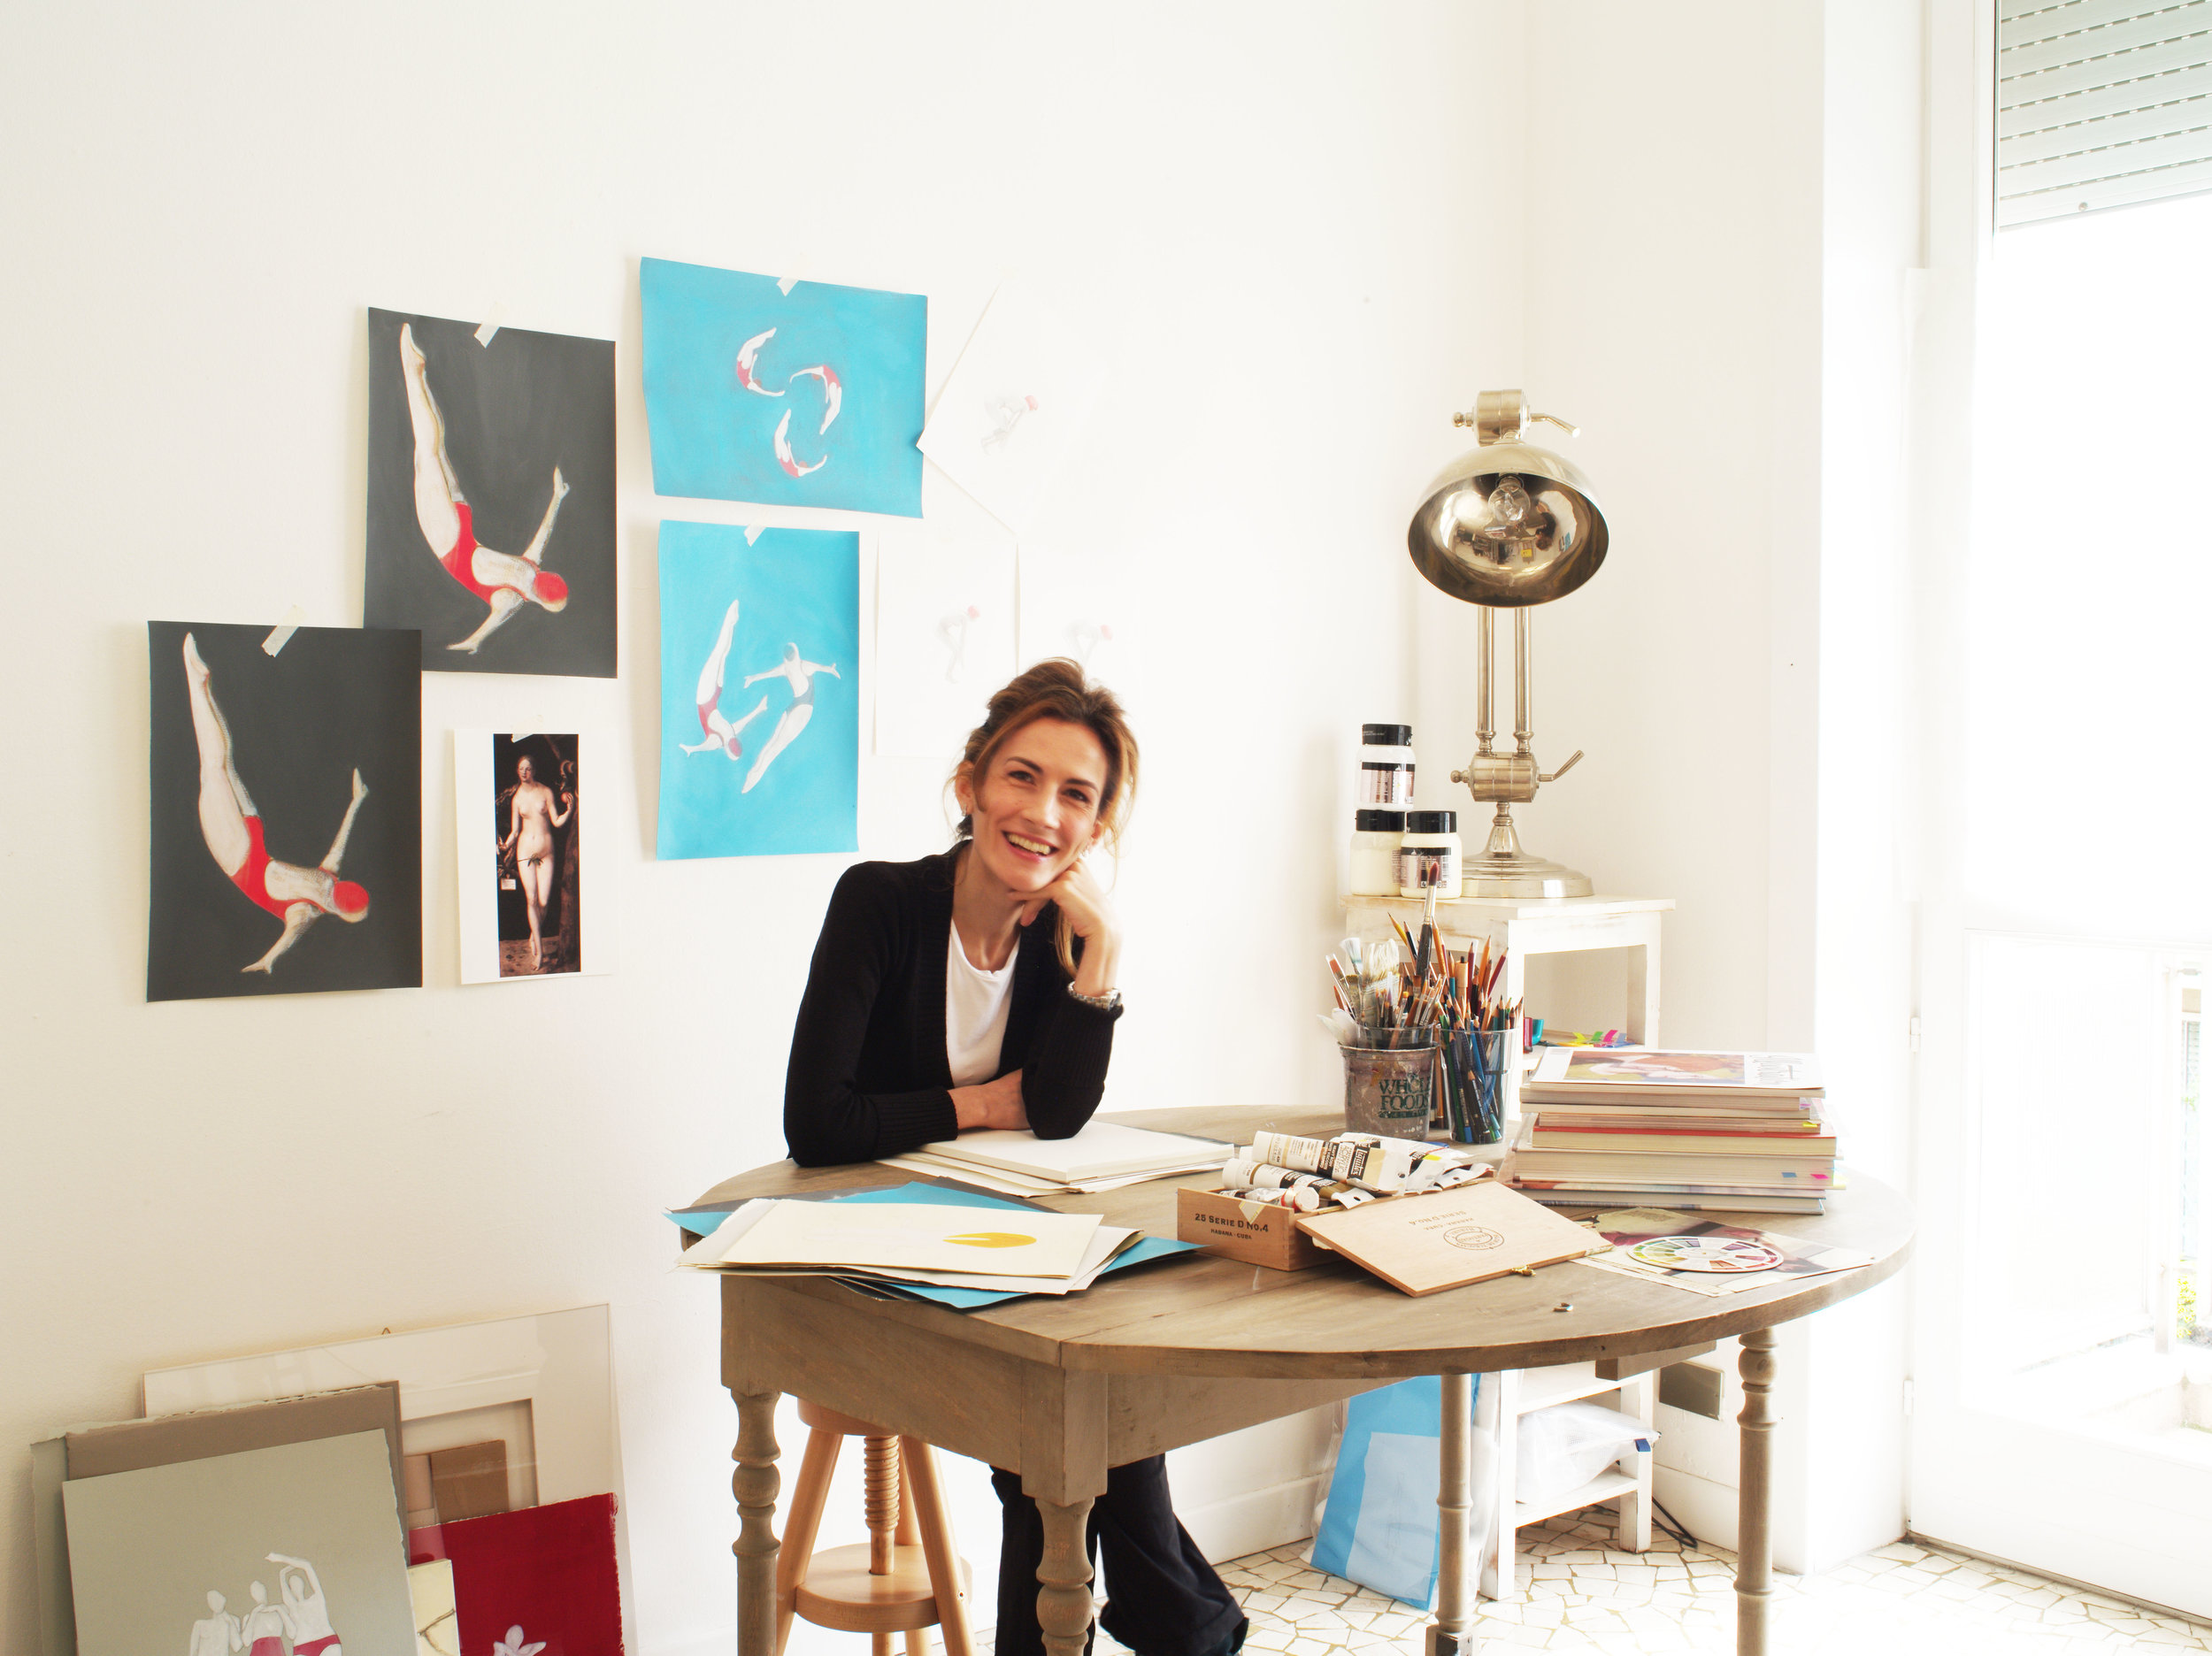 Roberta Pinna in her studio.